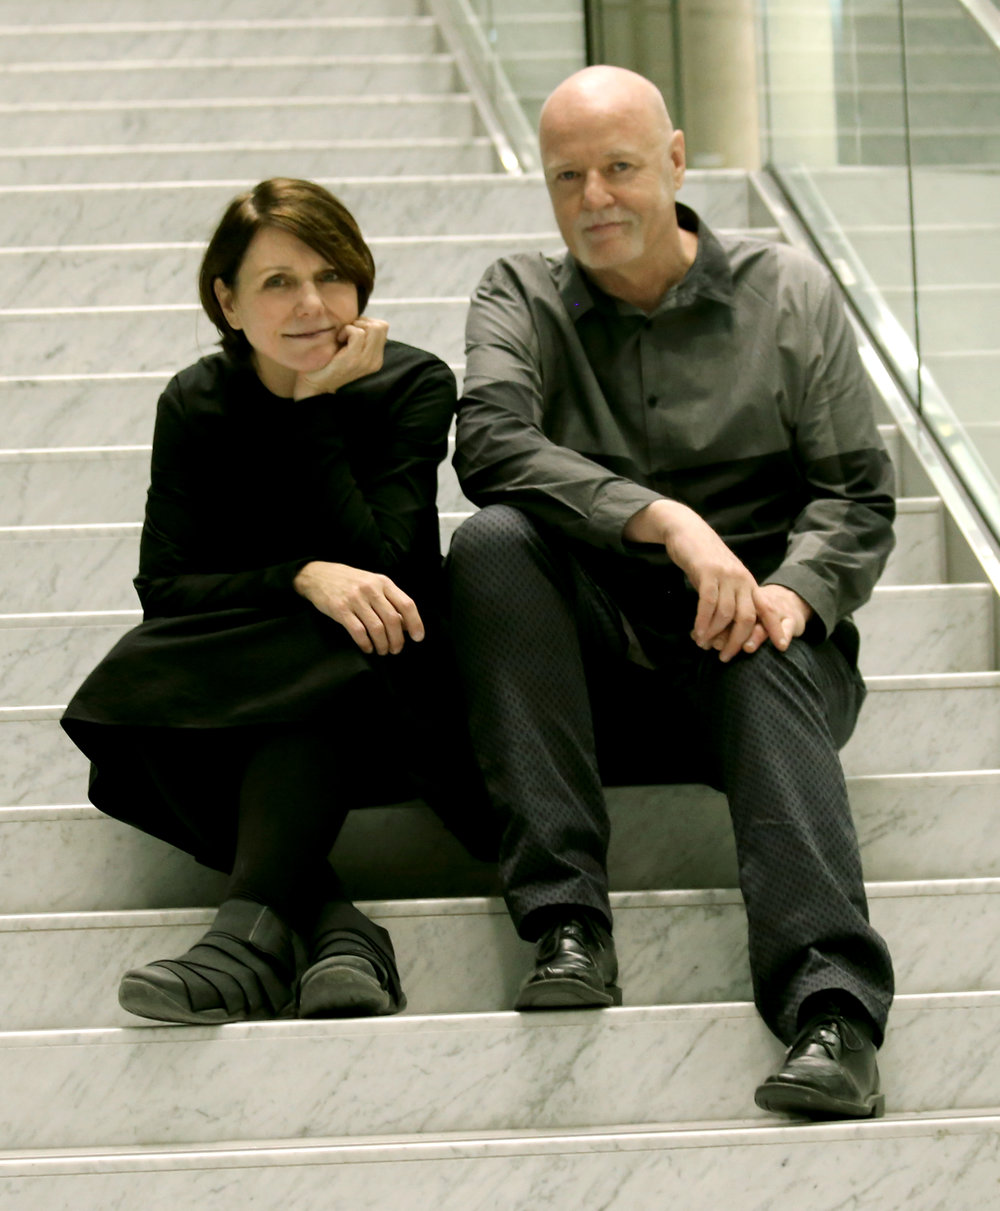 Sarah Joyce and Gordon Duggan, the dynamic duo that lead the New Media Gallery. Joyce and Duggan have been Directors/Curators at the New Media Gallery since it 2014. The gallery is a civic gallery in the City of New Westminster.